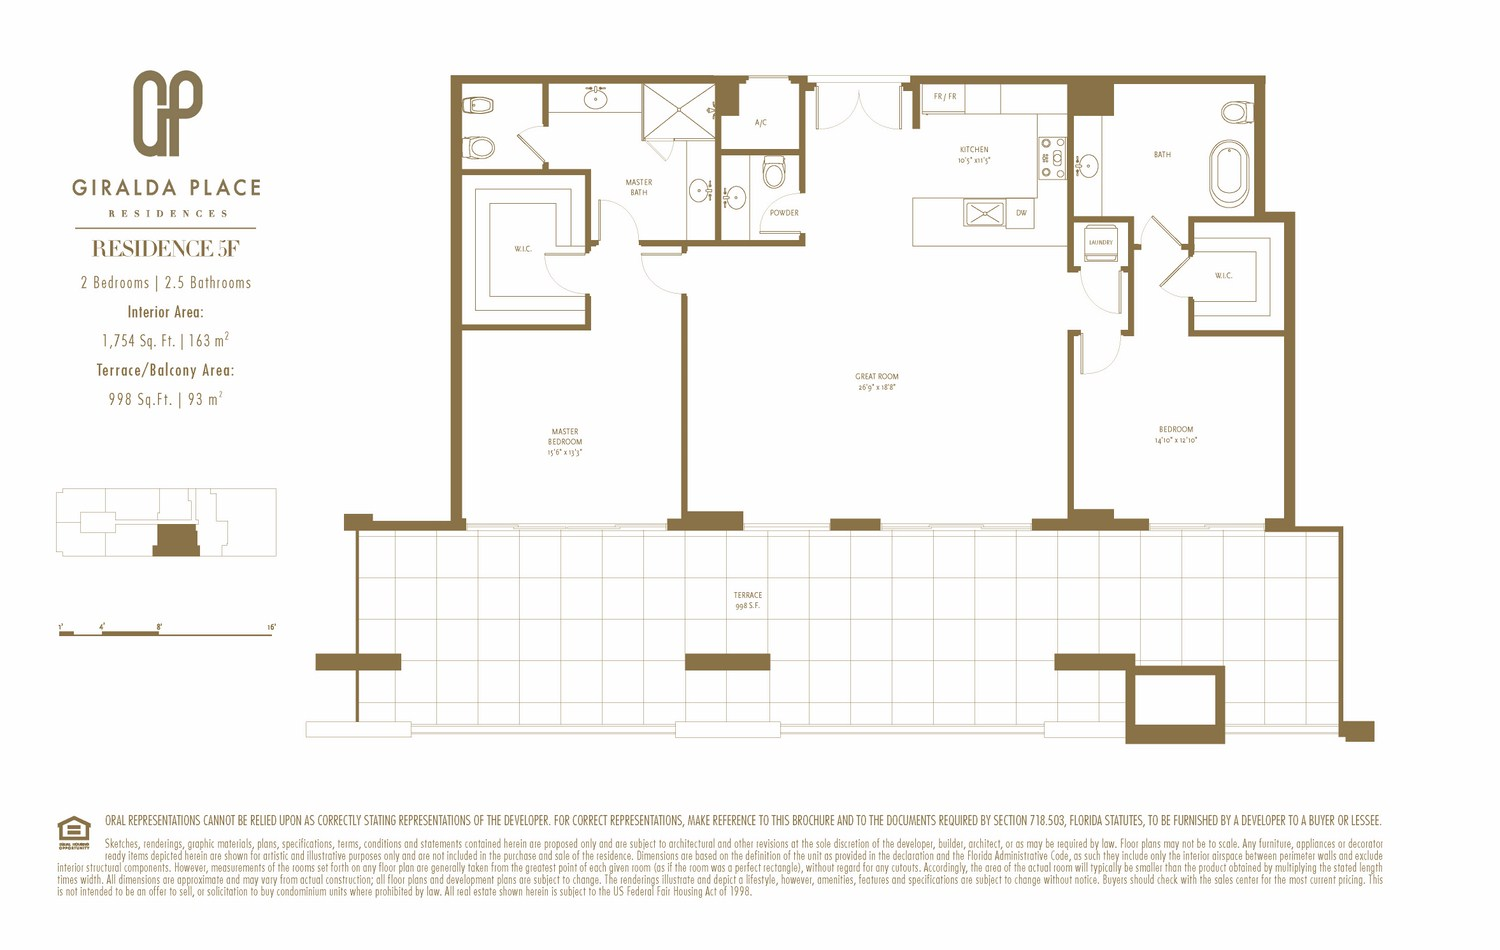 Giralda Place - Floorplan 5